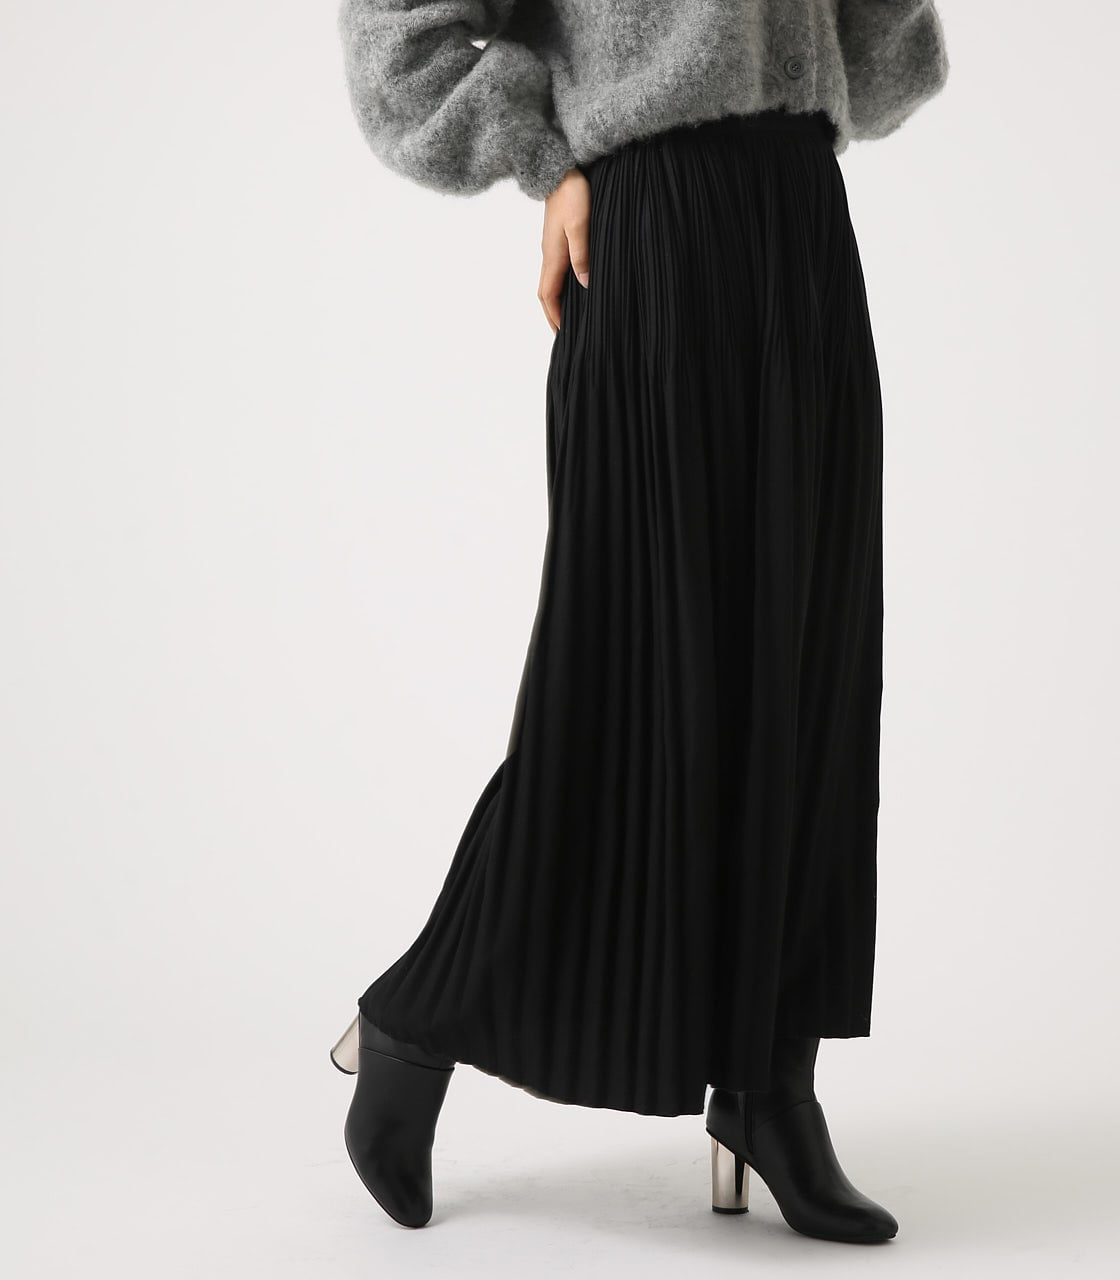 【AZUL BY MOUSSY】ベーシックプリーツスカート 詳細画像 BLK 2